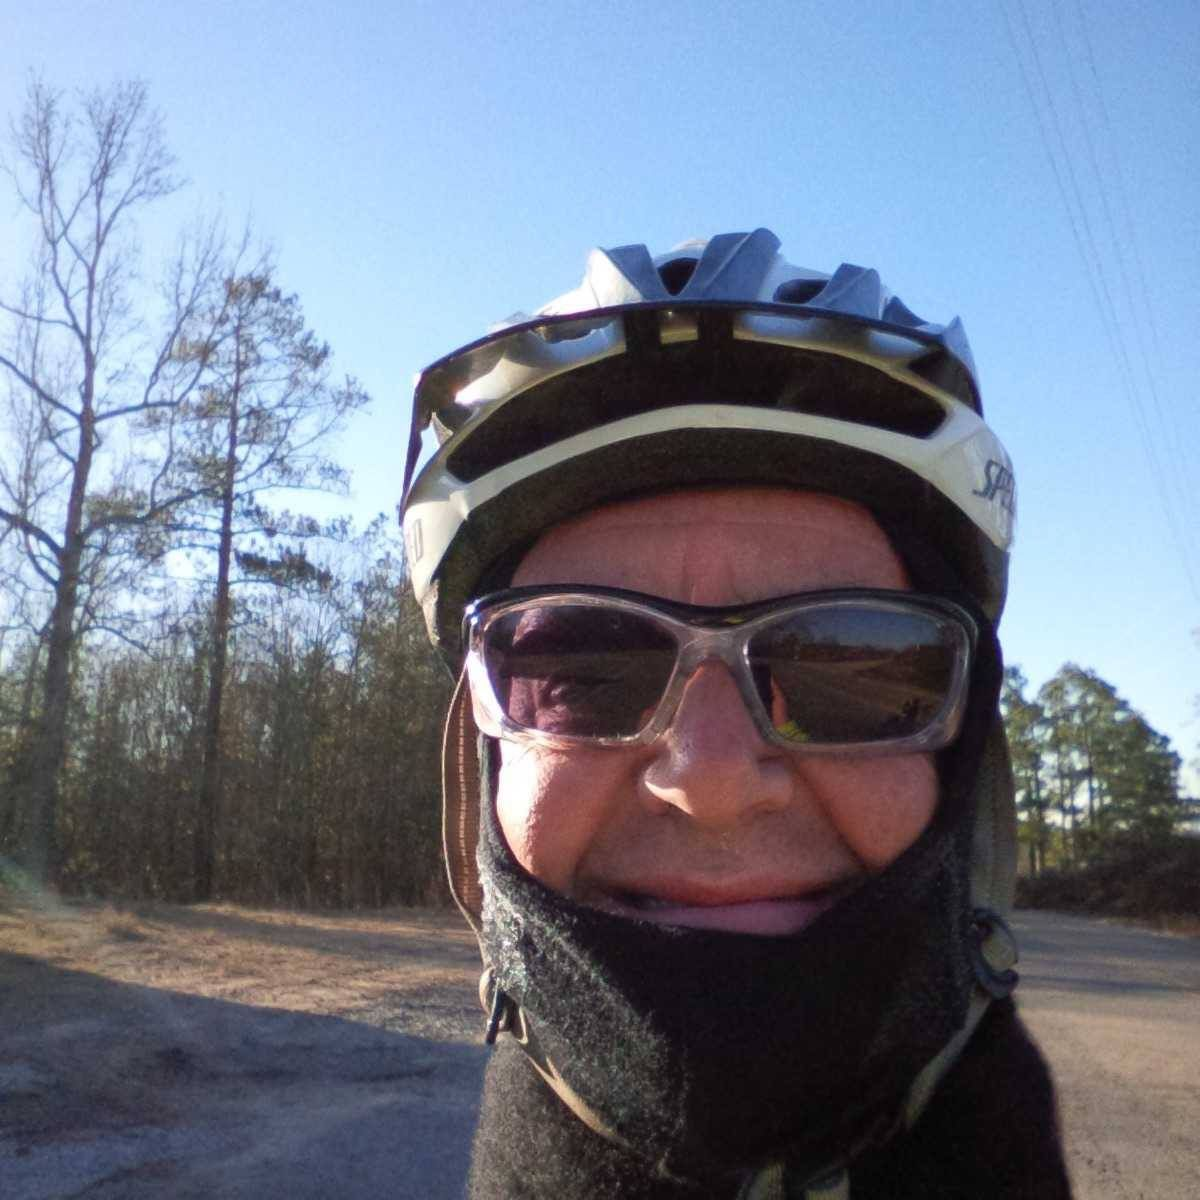 Cashmere Neck Gaiters Are Perfect For Long Winter Bike Rides